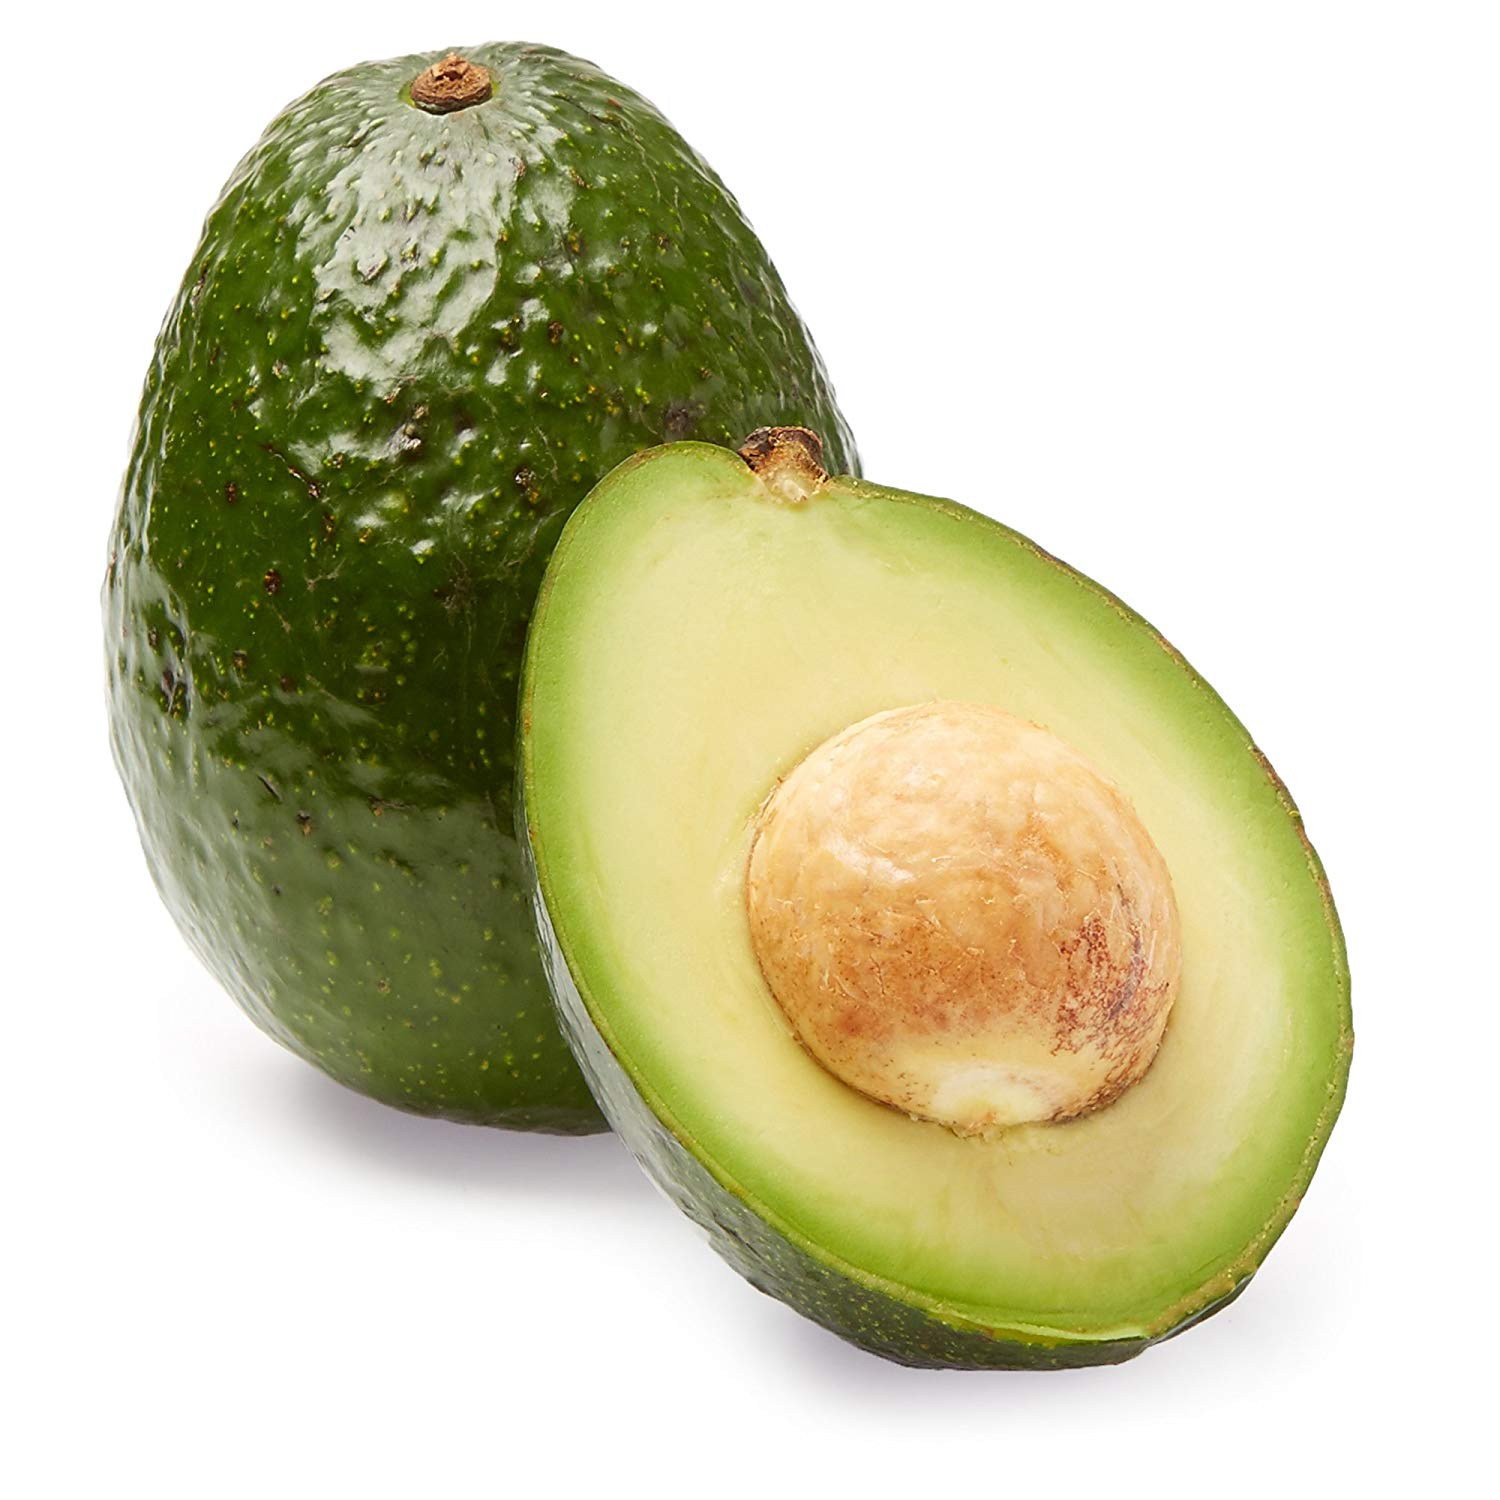 Avocado Pregnancy Week 16